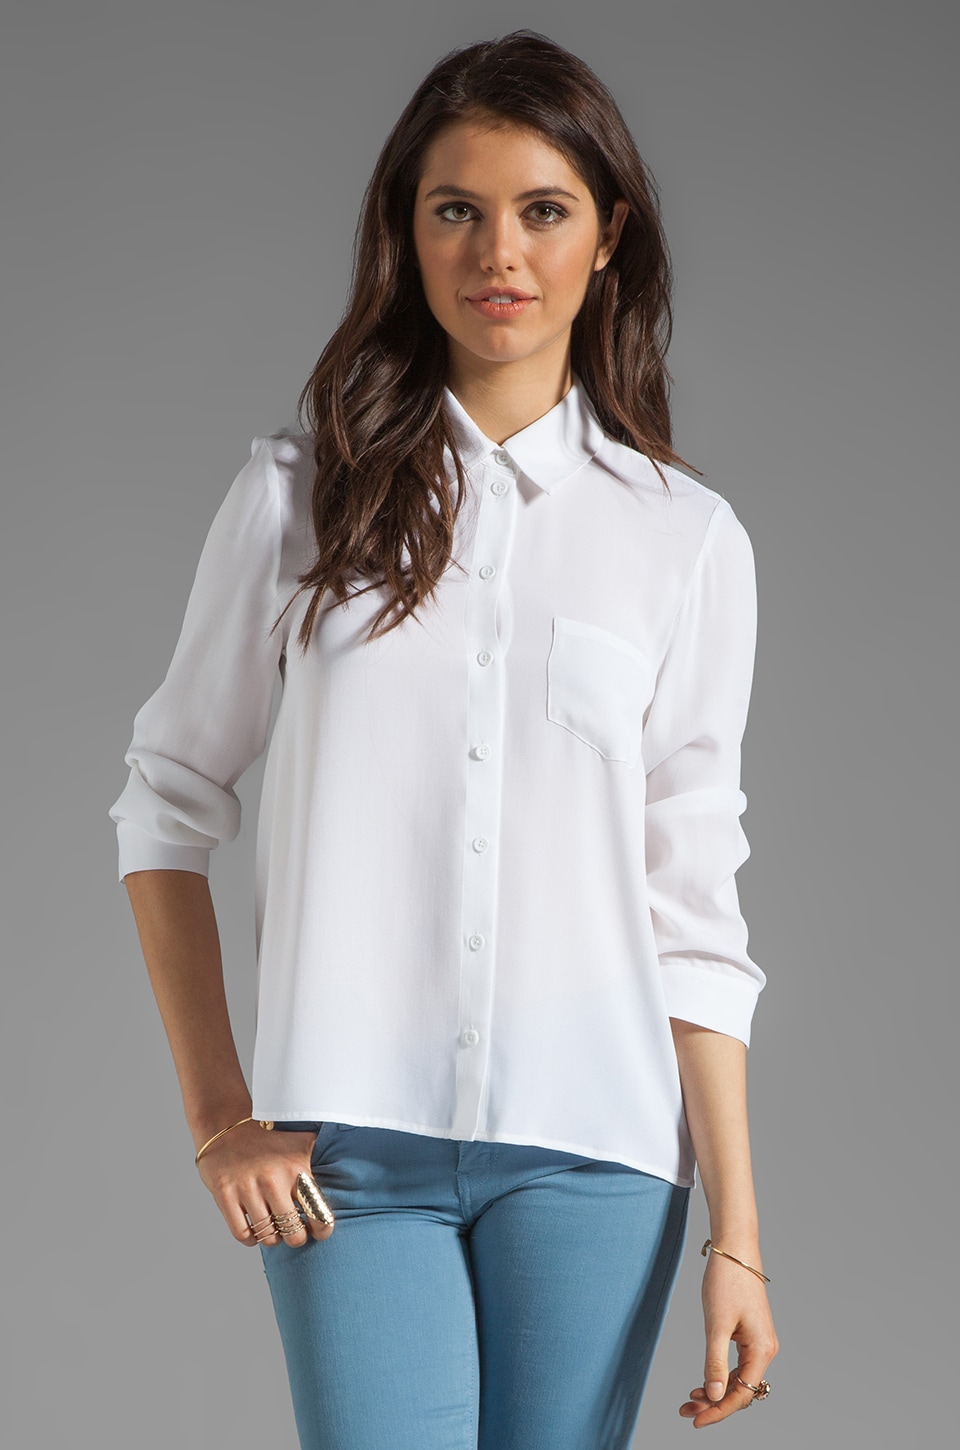 Alice + Olivia Desma Button Down Swing Blouse in White